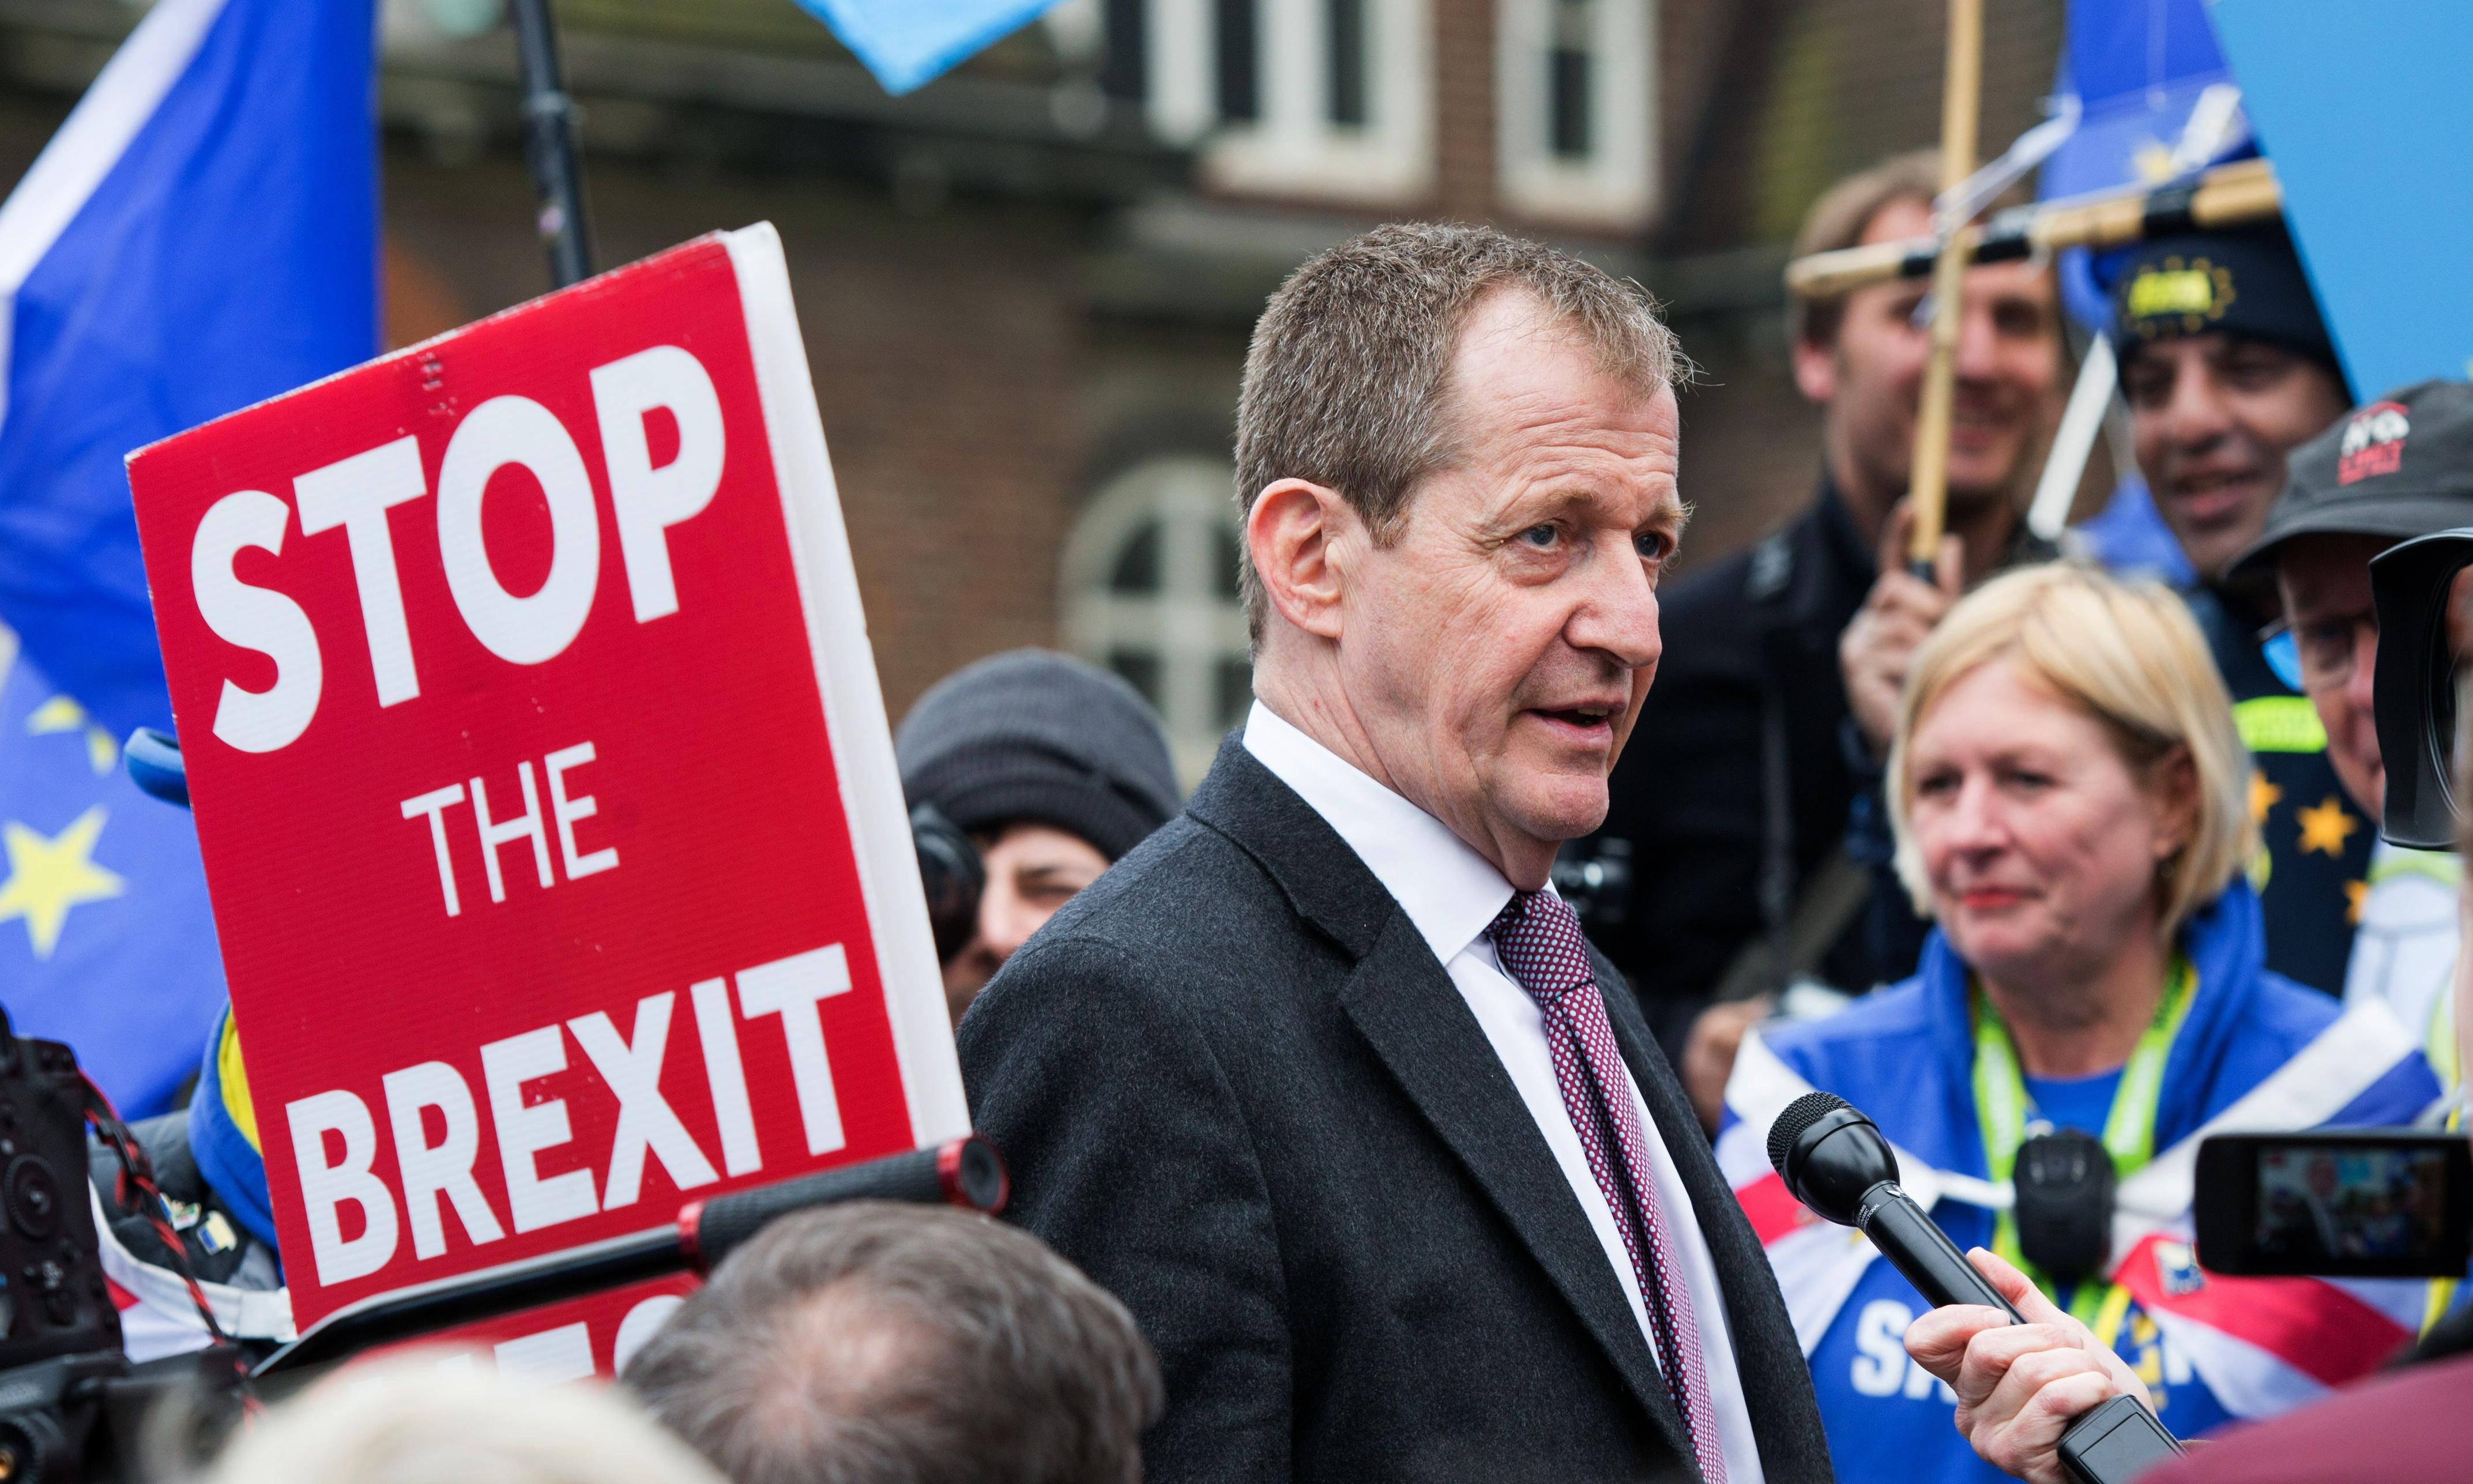 Alastair Campbell says he voted for 'remain party' in EU elections